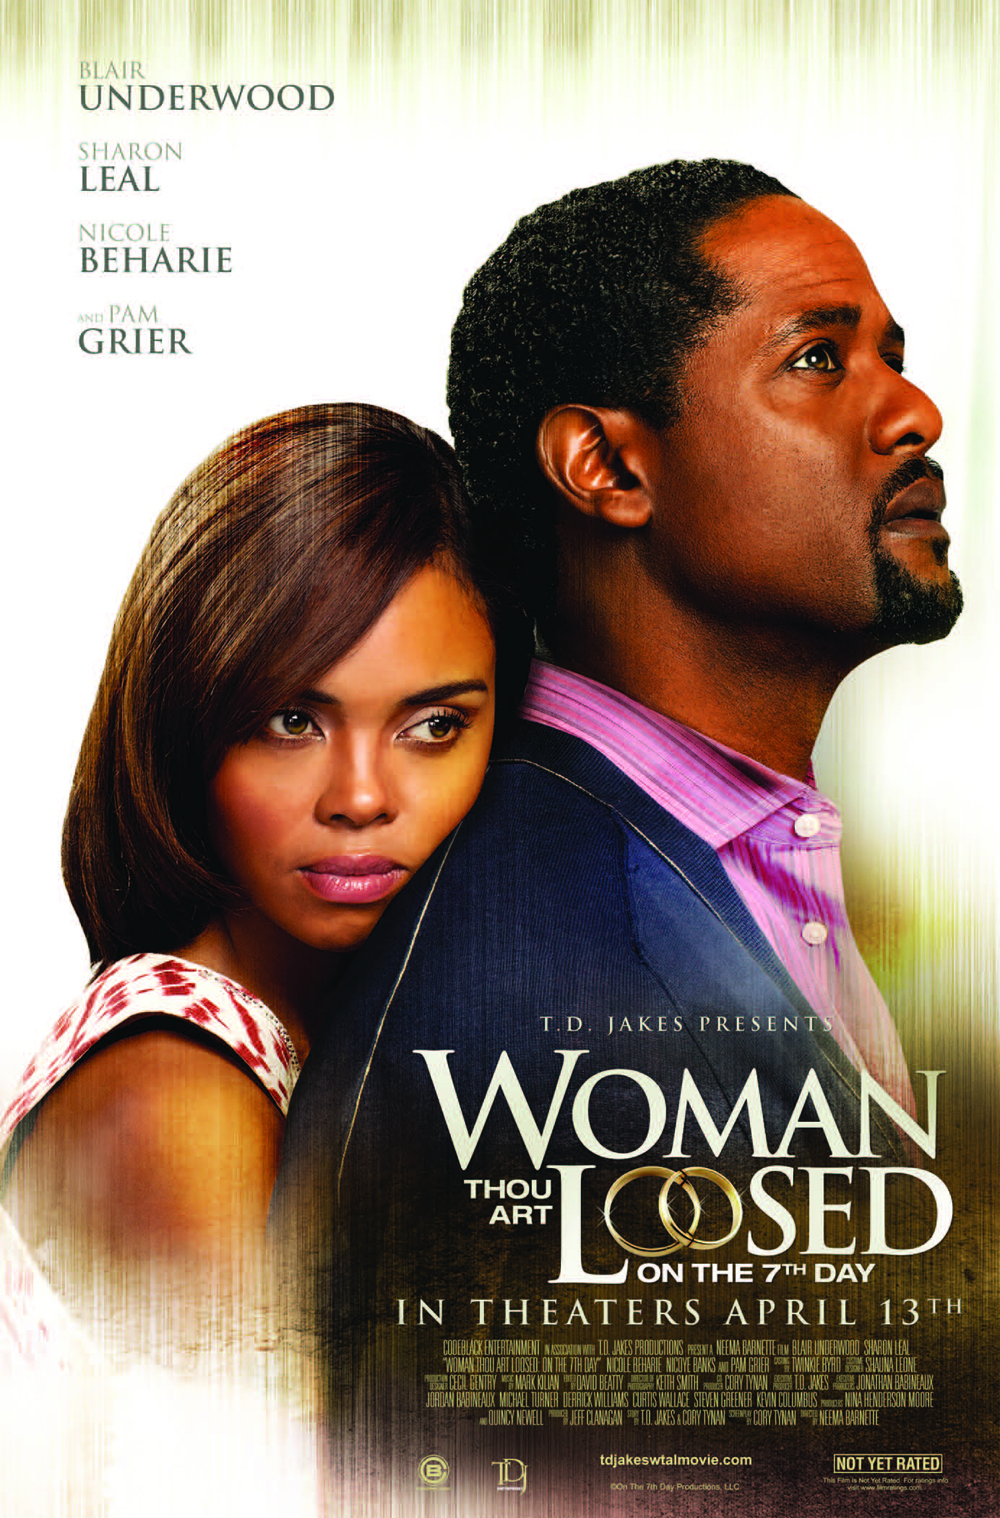 TD Jakes' 'Woman Thou Art Loosed!: On The 7th Day' Movie